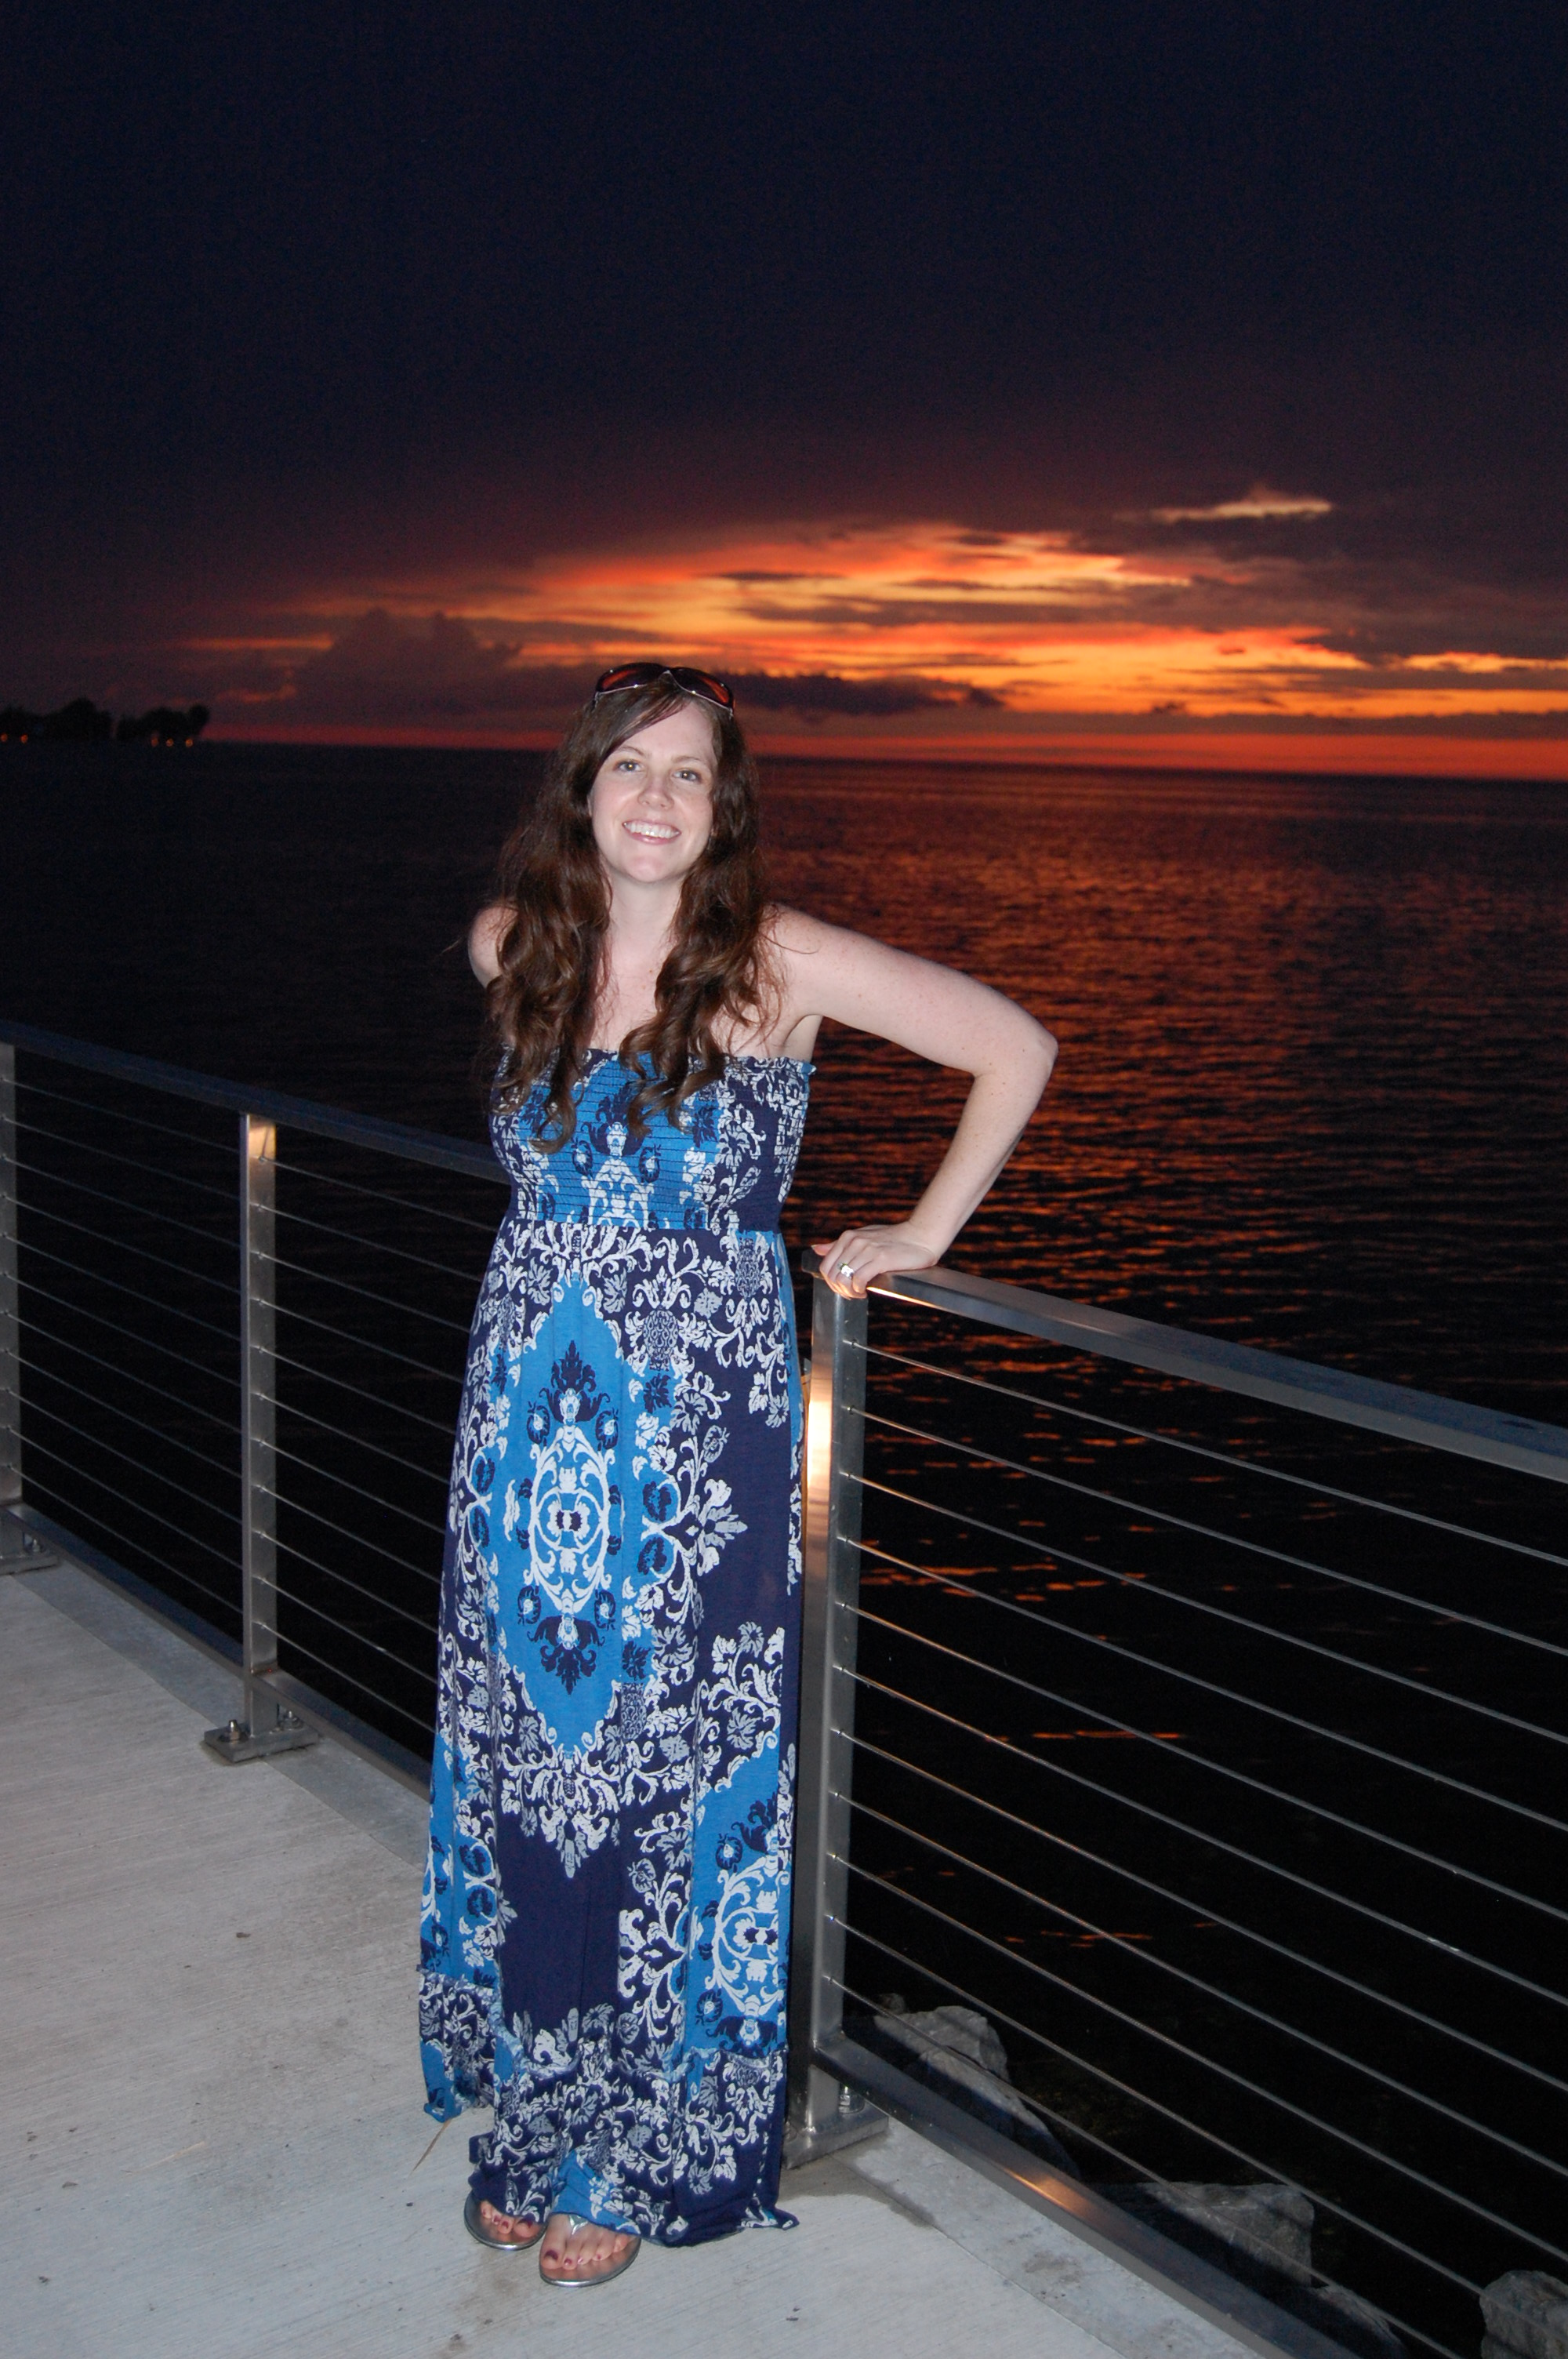 Modern vintage boutique reviews - Modern vintage boutique gave me the opportunity to review this maxi dress i can honestly say this is the only strapless dress i have ever been comfortable